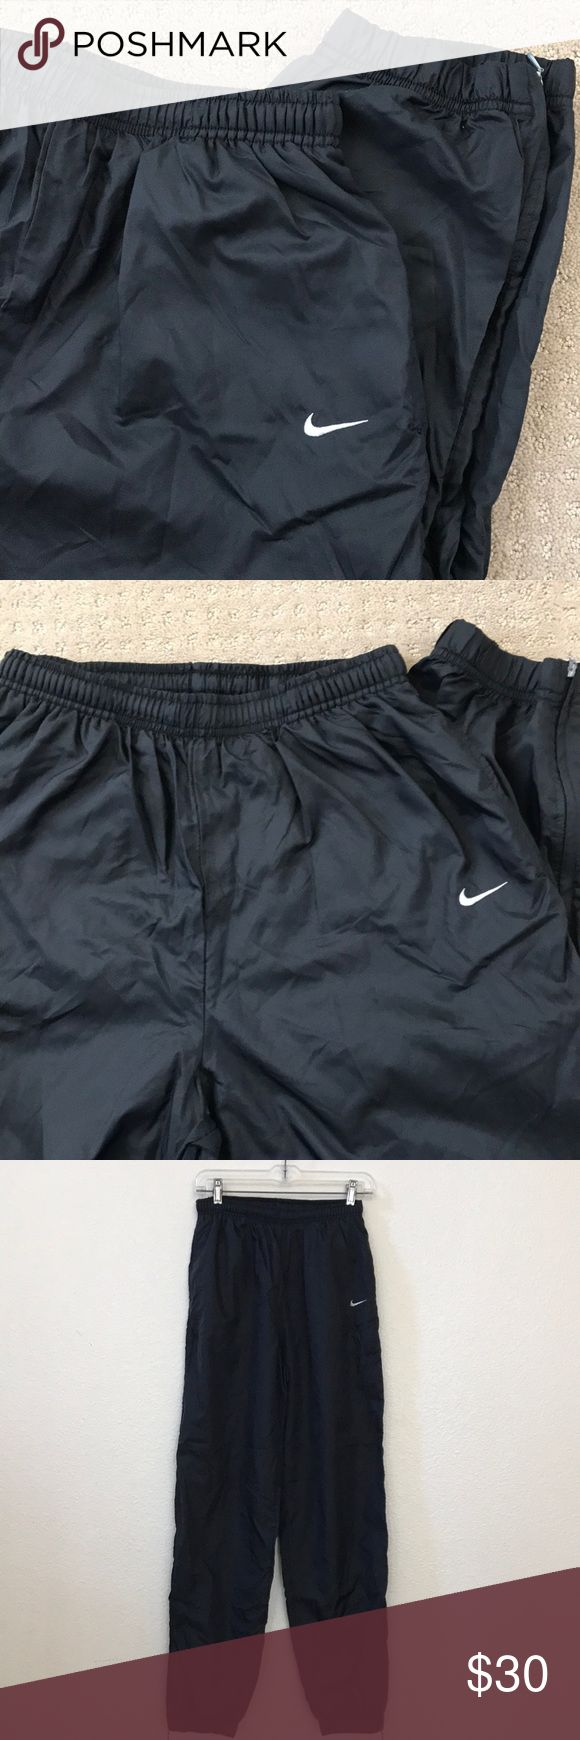 EUC Nike Training pants w ankle zippers ladies L Classic black Nike Training pants in ladies large (12-14), excellent preloved condition. Features cozily lined slit pockets & zippered ankles for easy on&off (built for serious athletes who don't have time to remove their shoes &/or for lazy days😂). Waistband is elasticized with drawstring to further customize your fit.  Material is a windbreaker-like 100% nylon exterior & heather gray t-shirt like cotton/polyester liner to zippered ankle…